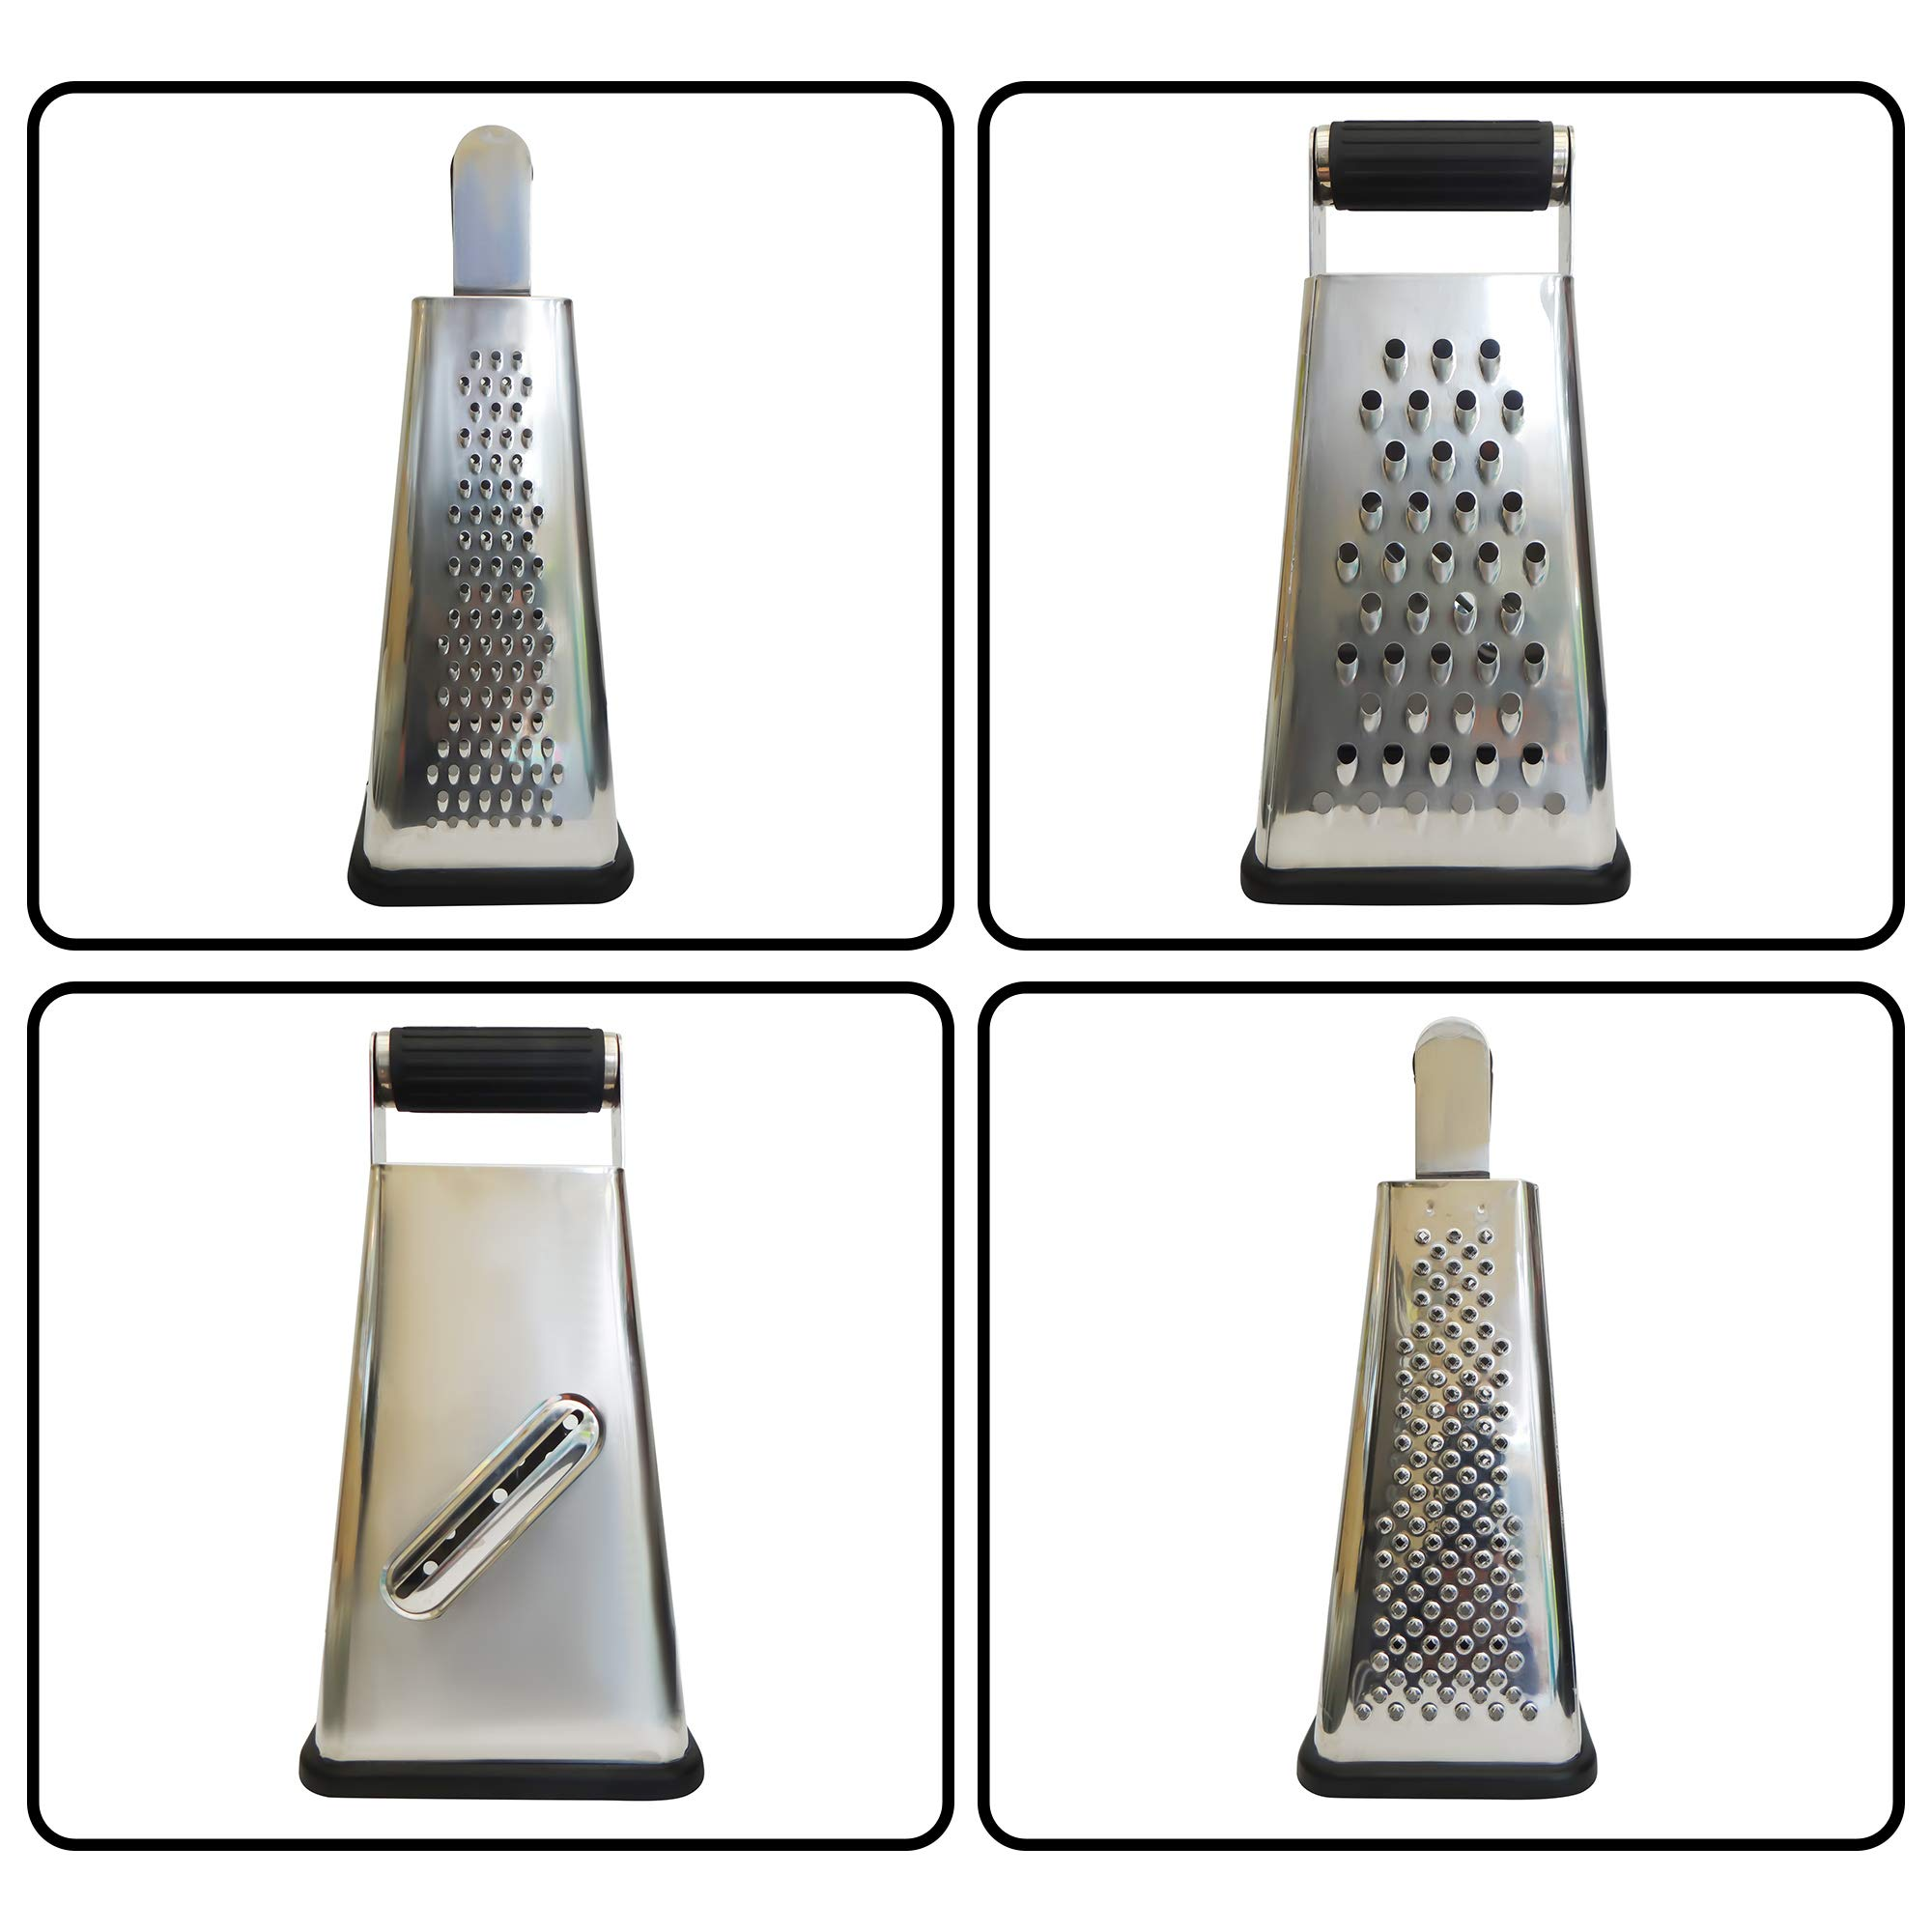 Box Grater With Container to Catch and Store Shavings - Our 4 Sided Cheese Grater Is Perfect For Grating, Zesting and Slicing - Made From Commercial Grade Stainless Steel Which will NOT RUST